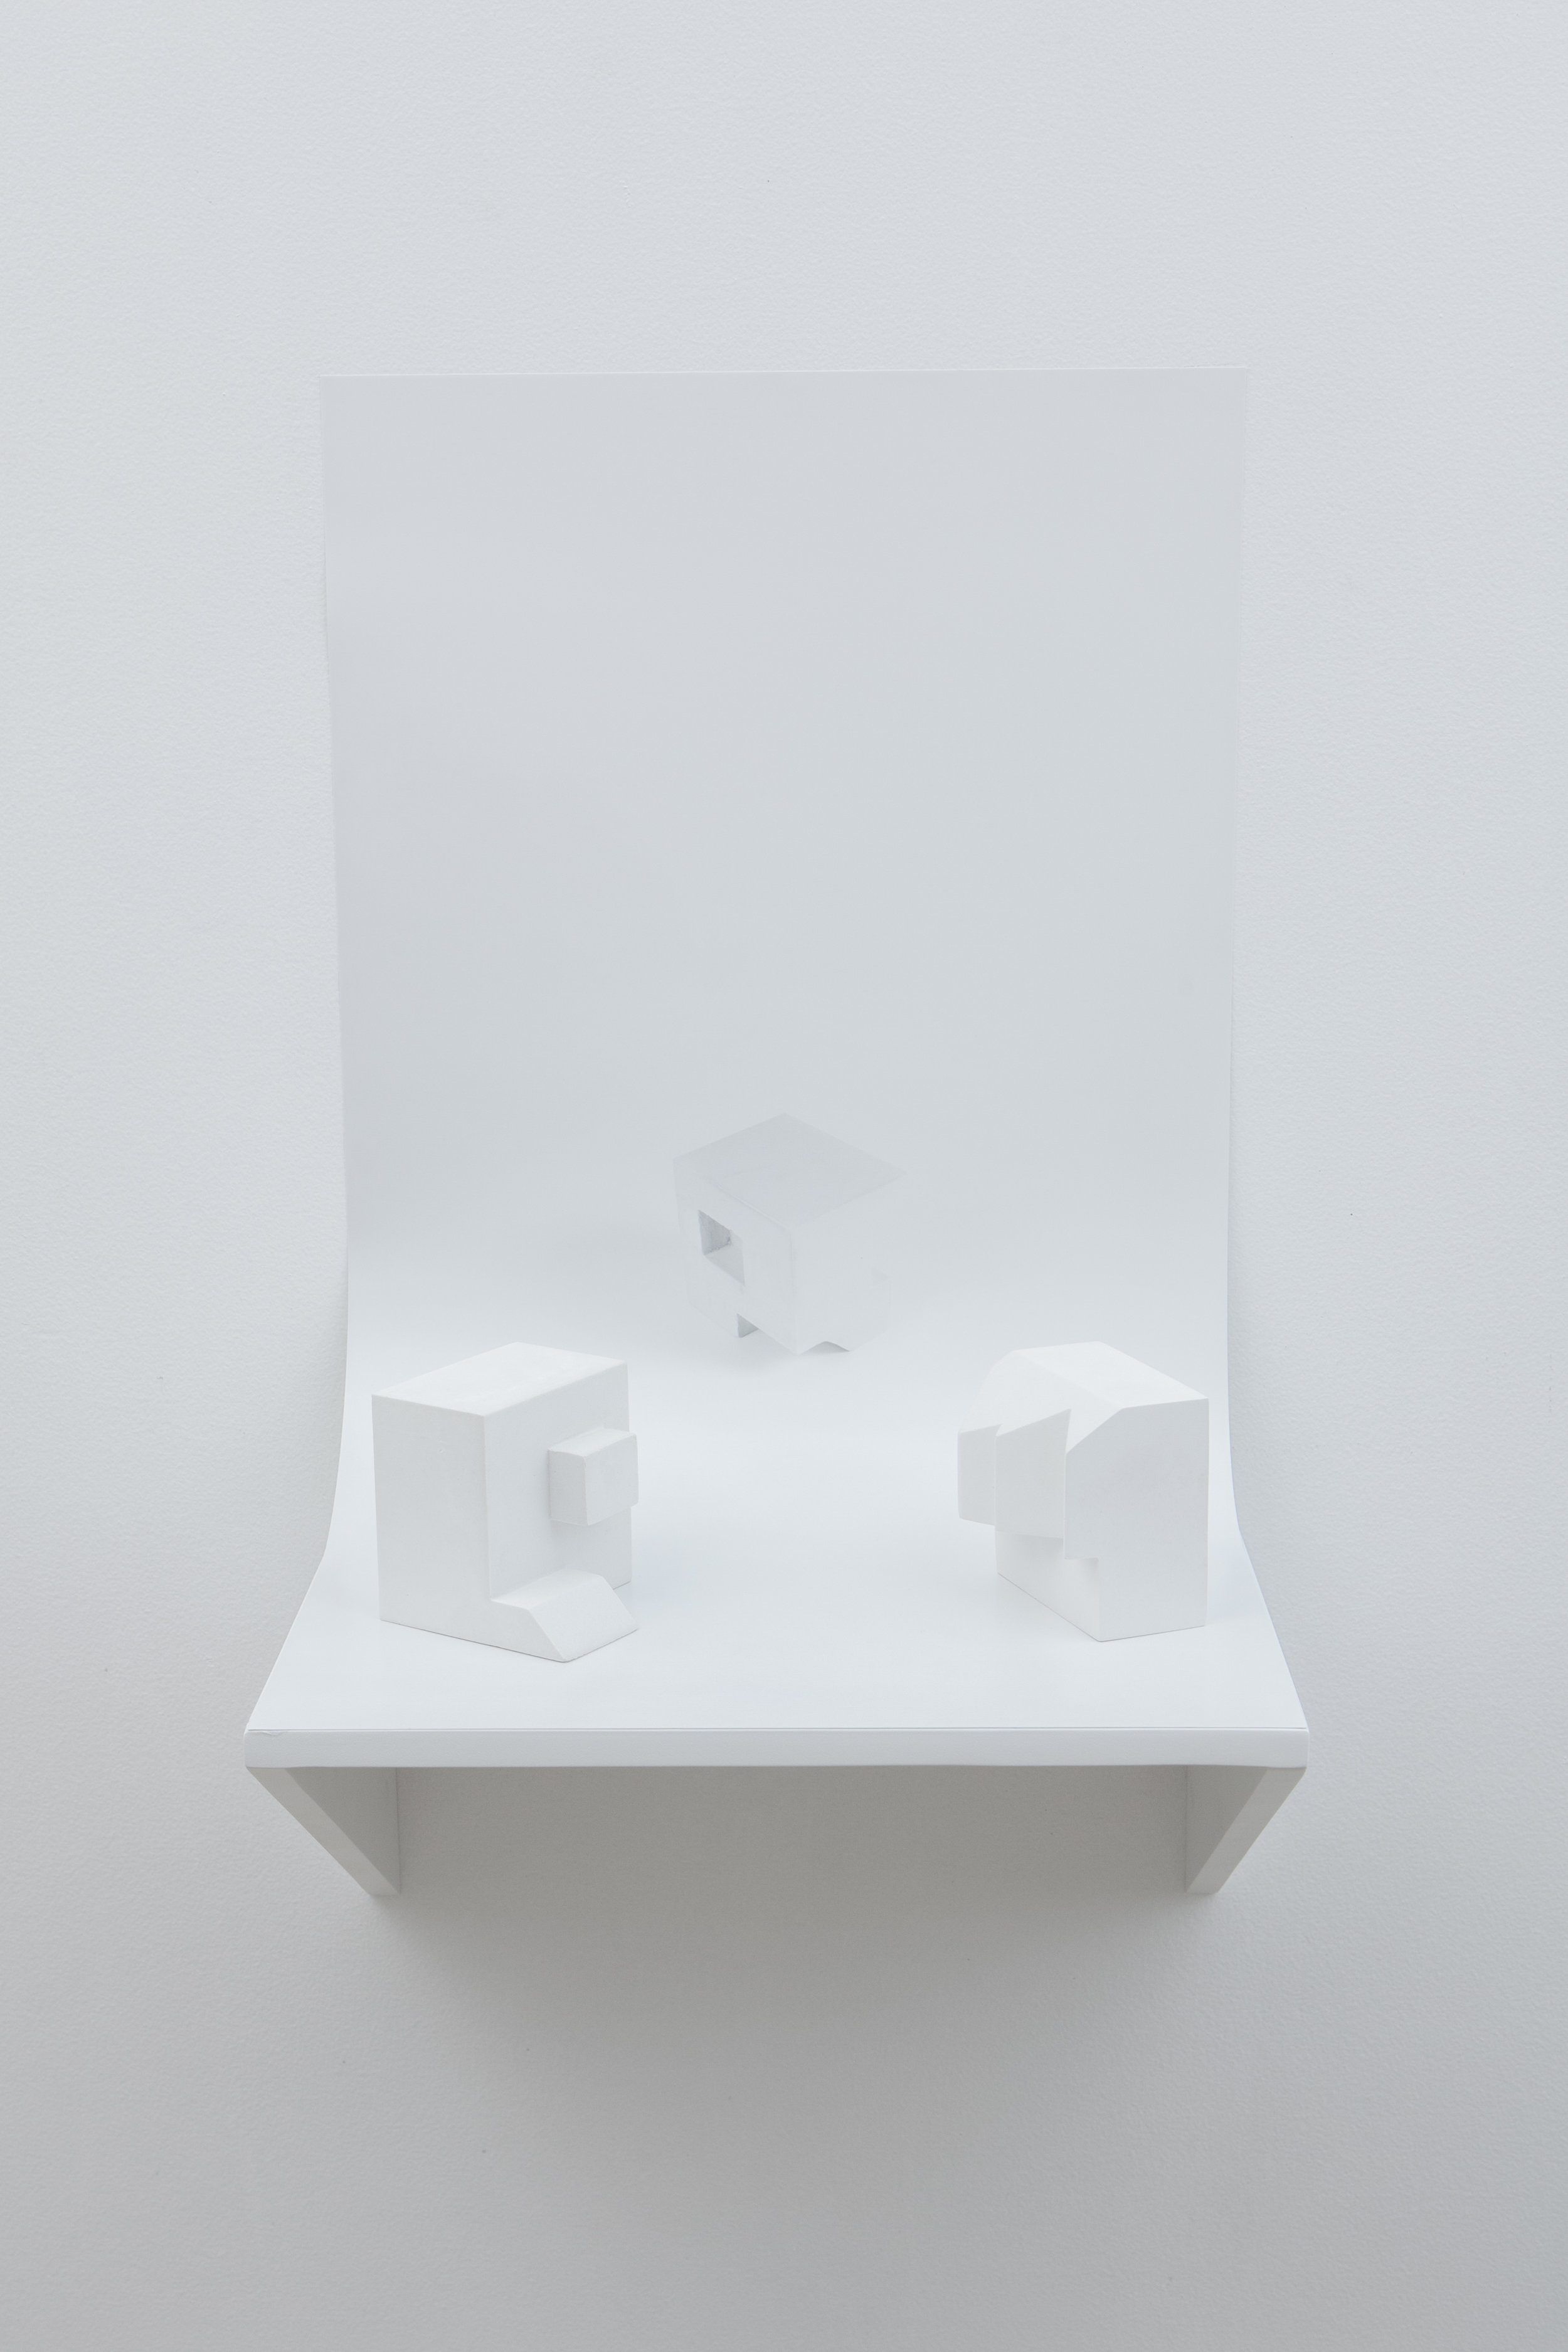 Julien Nédélec, AND SO ON, 2015 synthesis of plaster, painted wood, photography 70 x 39,5 x 30 cm - 27 1/2 x 15 1/2 x 11 3/4 inches